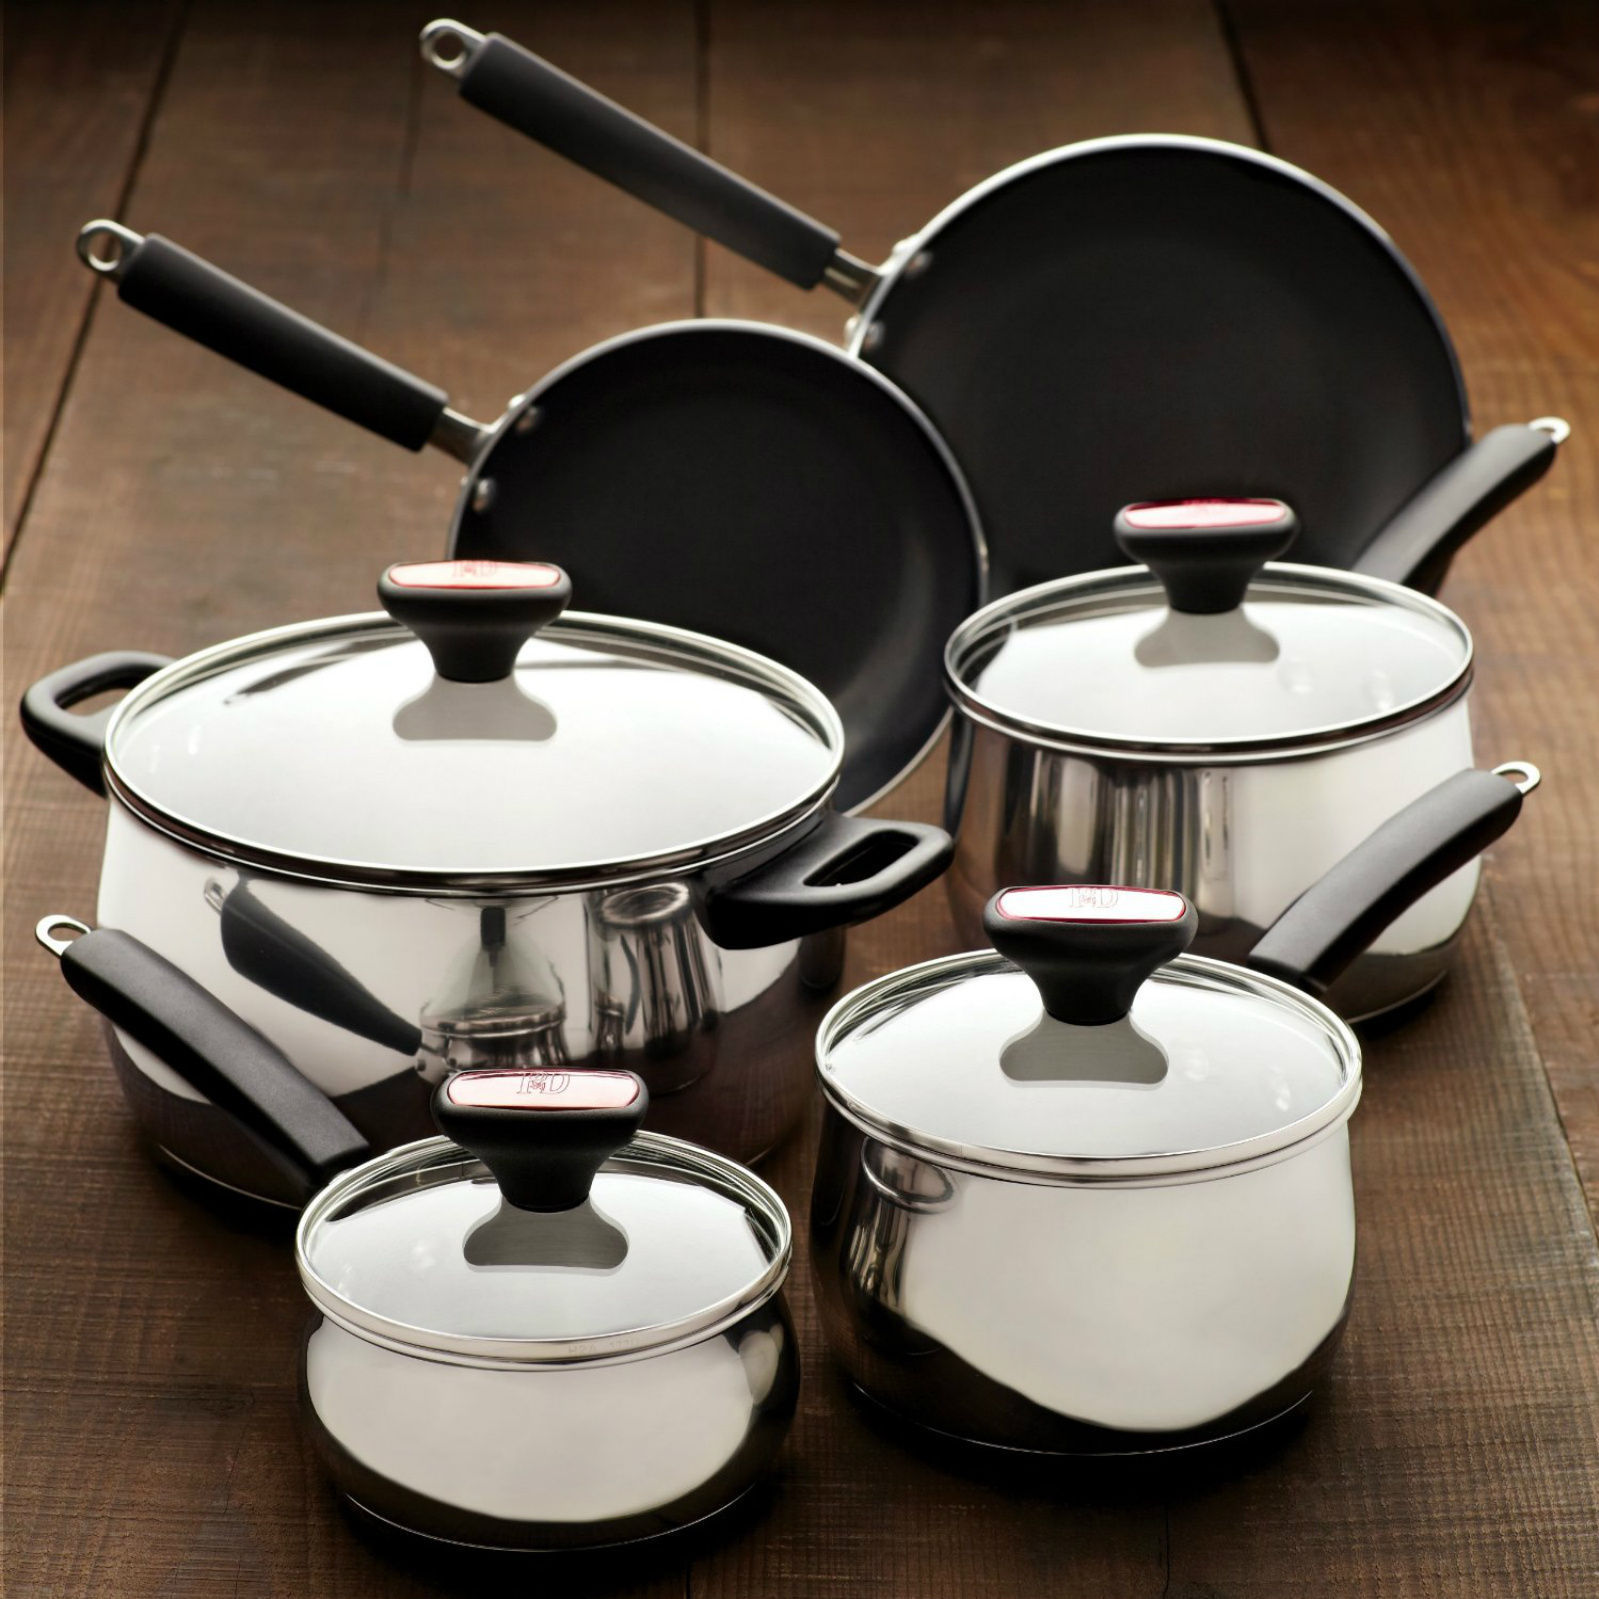 Cookware sets stainless steel nonstick 12 piece pots and for New kitchen set